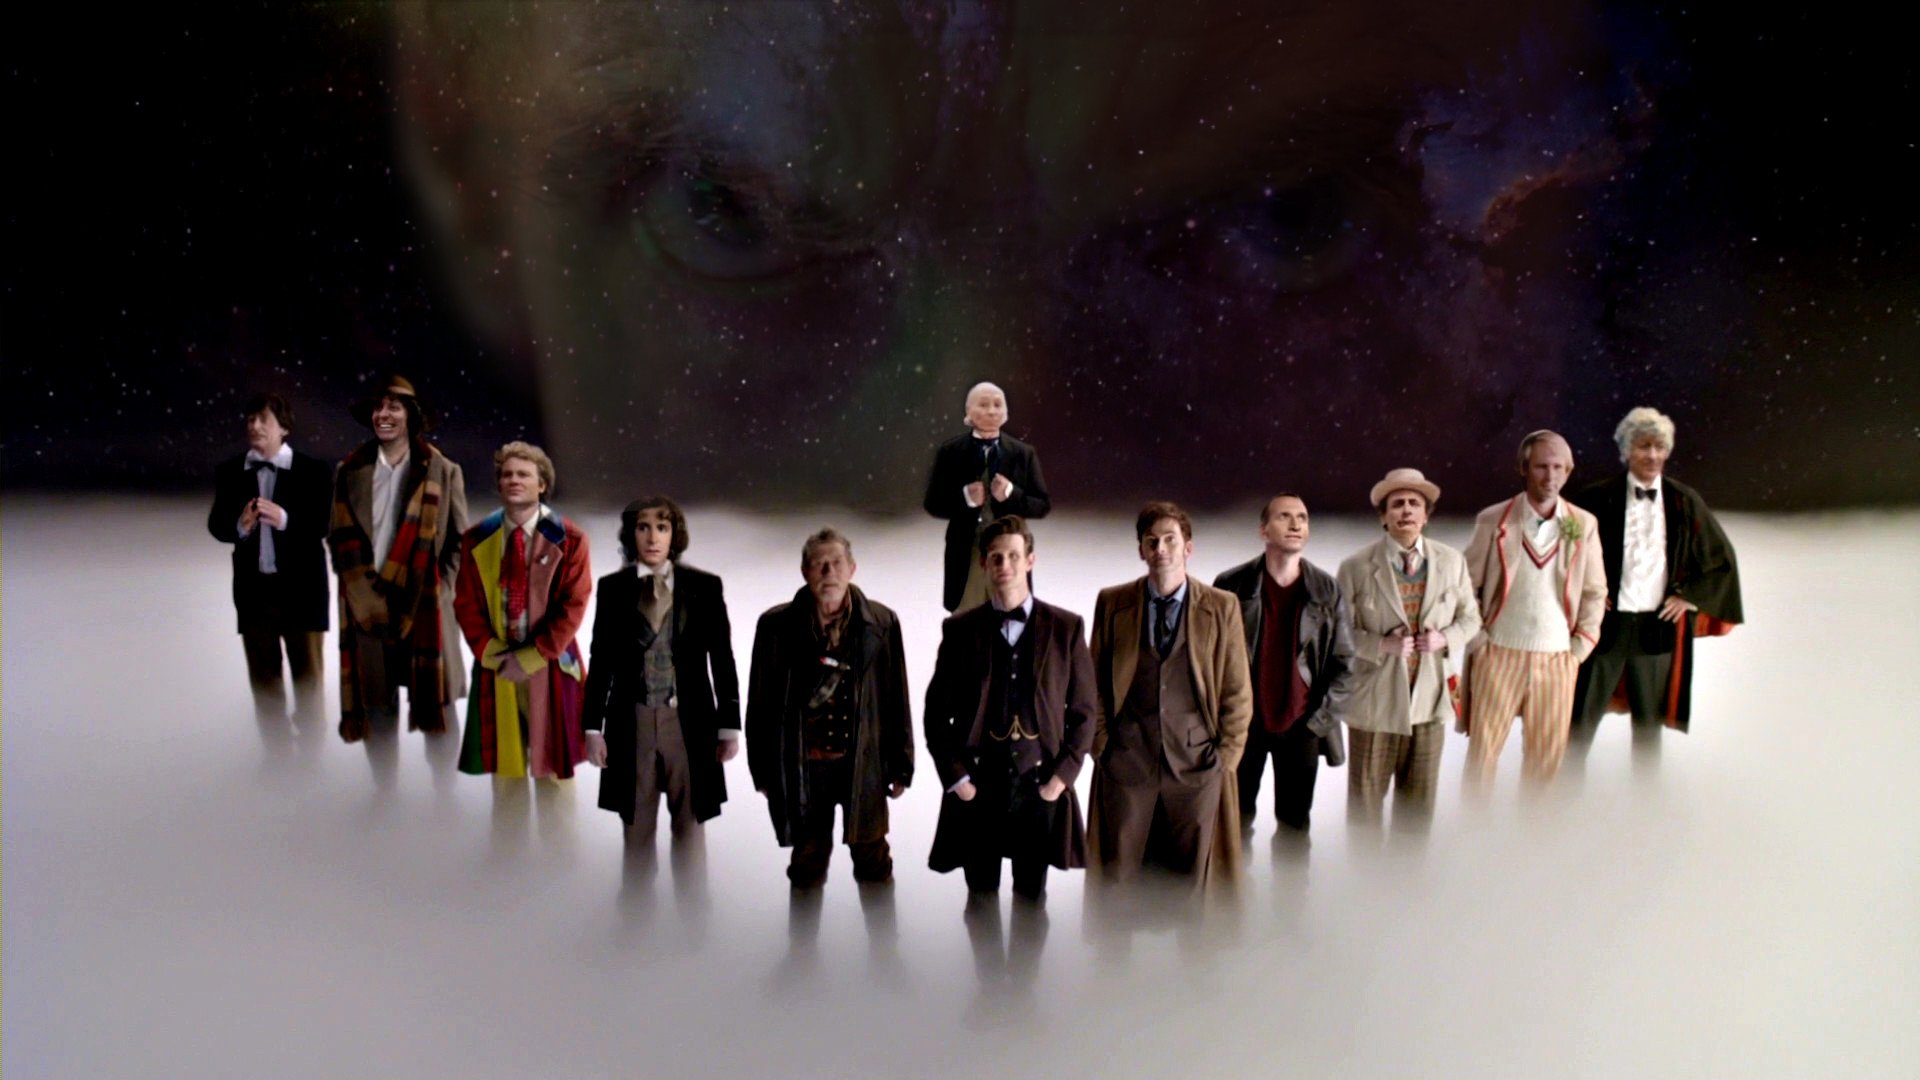 713 doctor who hd wallpapers | background images - wallpaper abyss